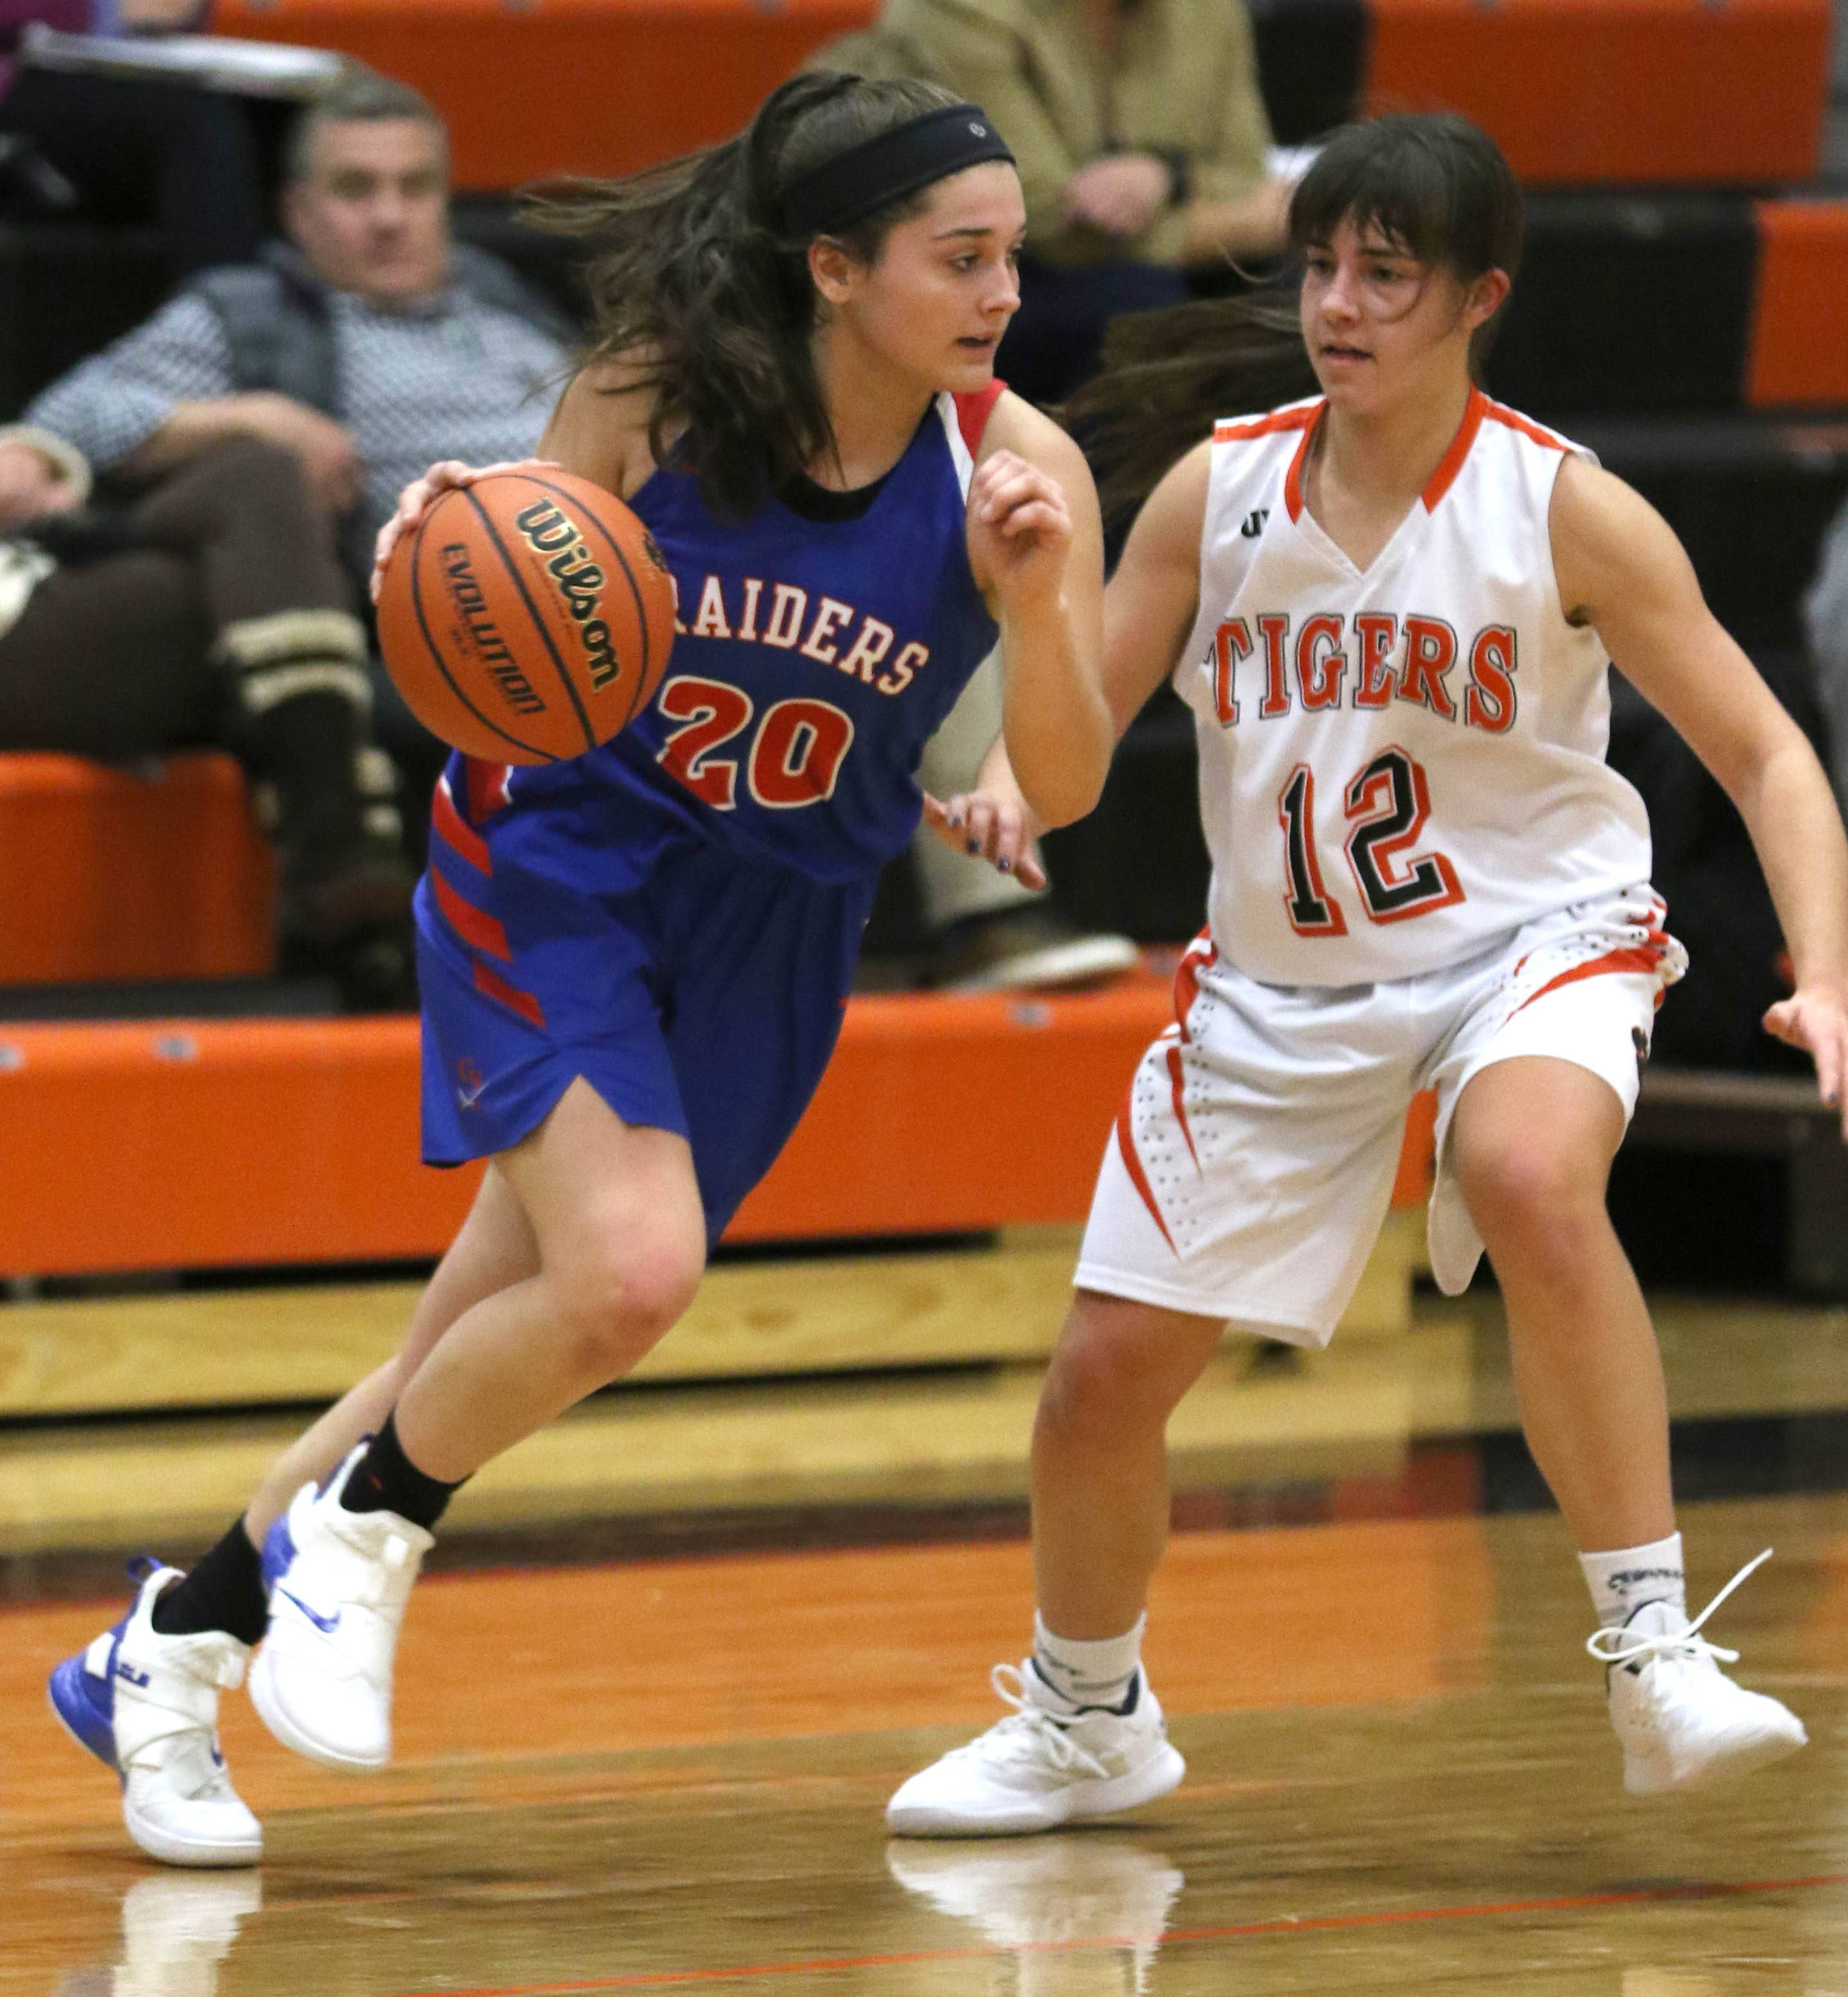 Glenbard South's Cat Karr, left, moves past Wheaton Warrenville South's Mira Emma during varsity girls basketball at Wheaton Warrenville South High School Wednesday evening.